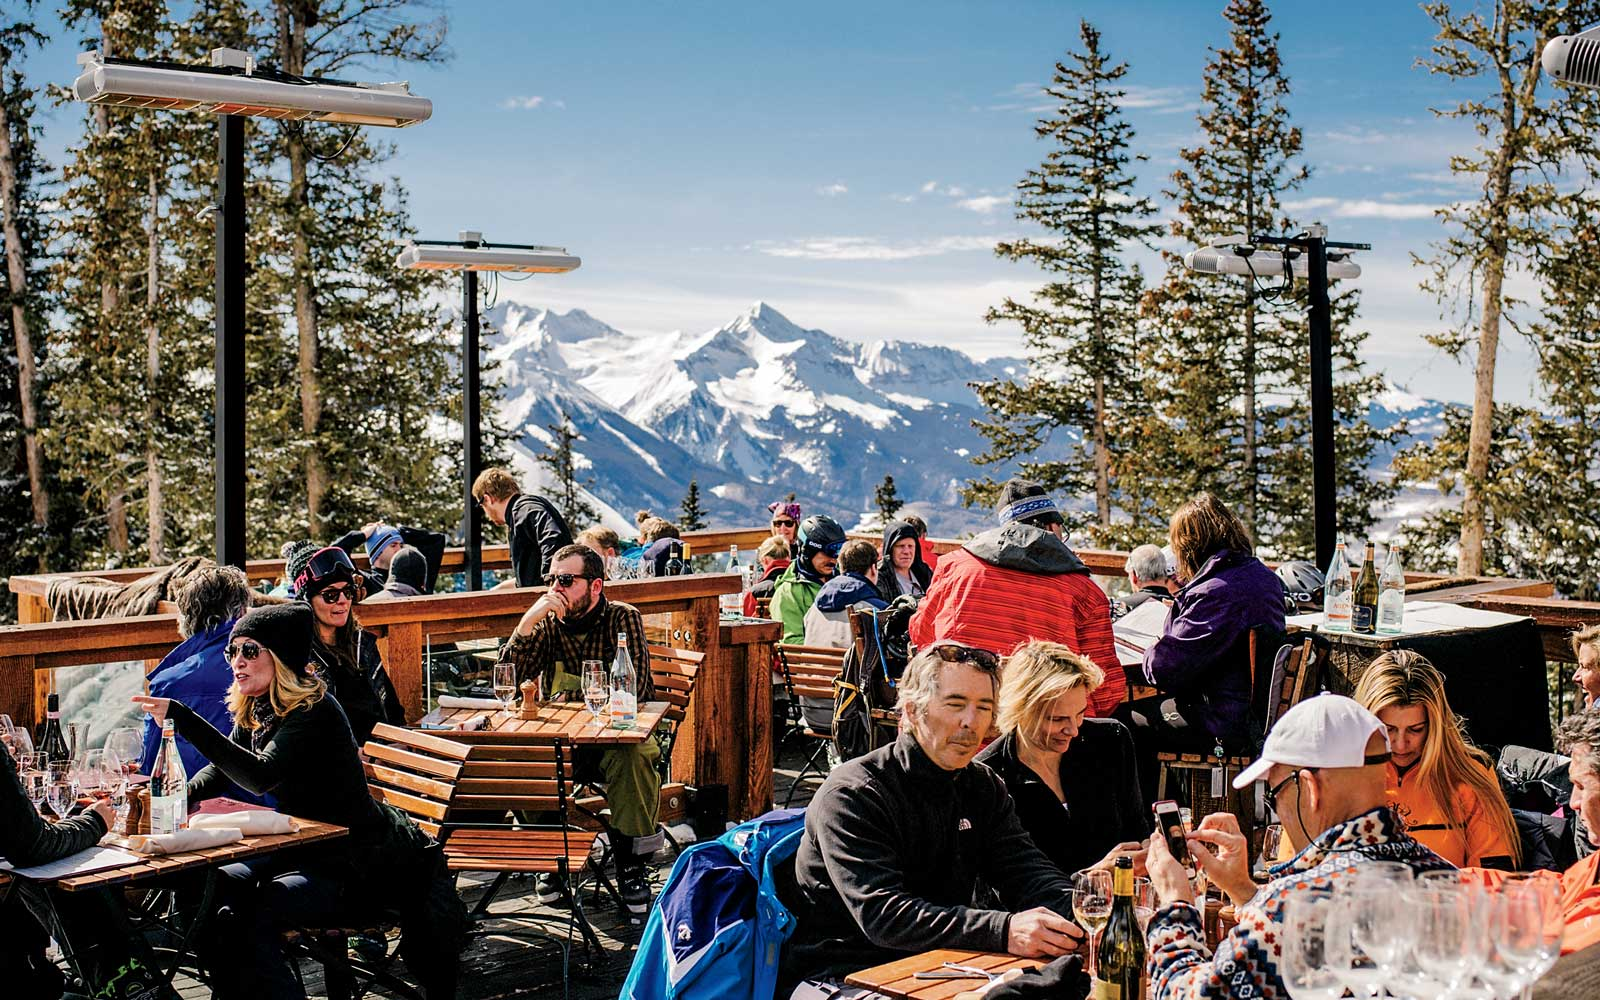 Apres ski dining at Alpino Vino, on Telluride Mountain